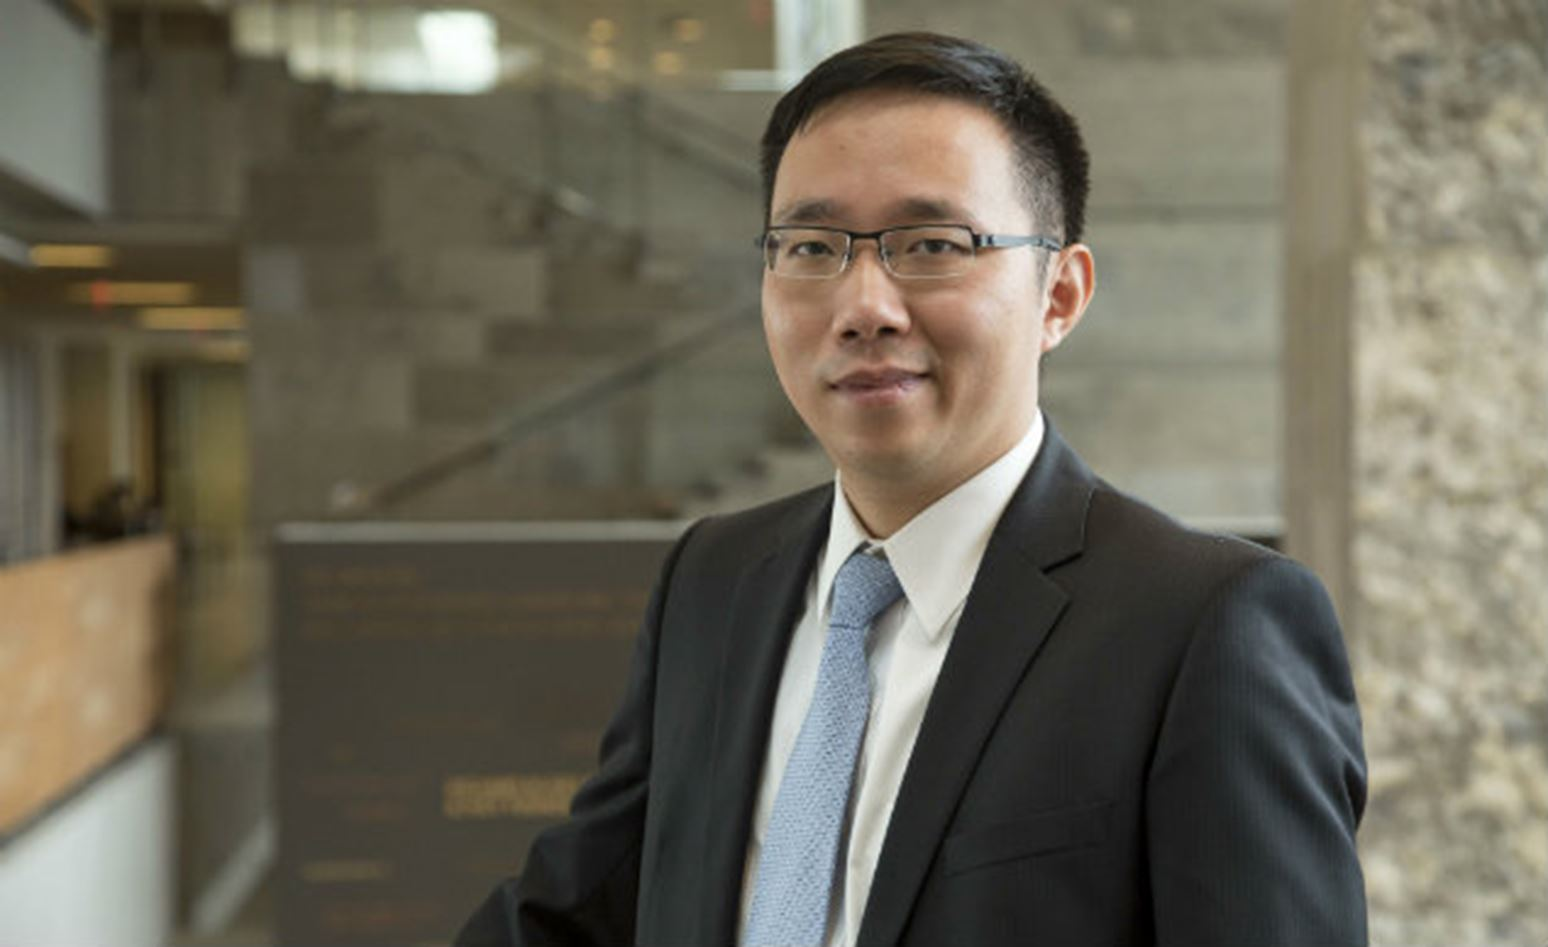 Xin (Shane) Wang: Using big data to bring consumers what they want